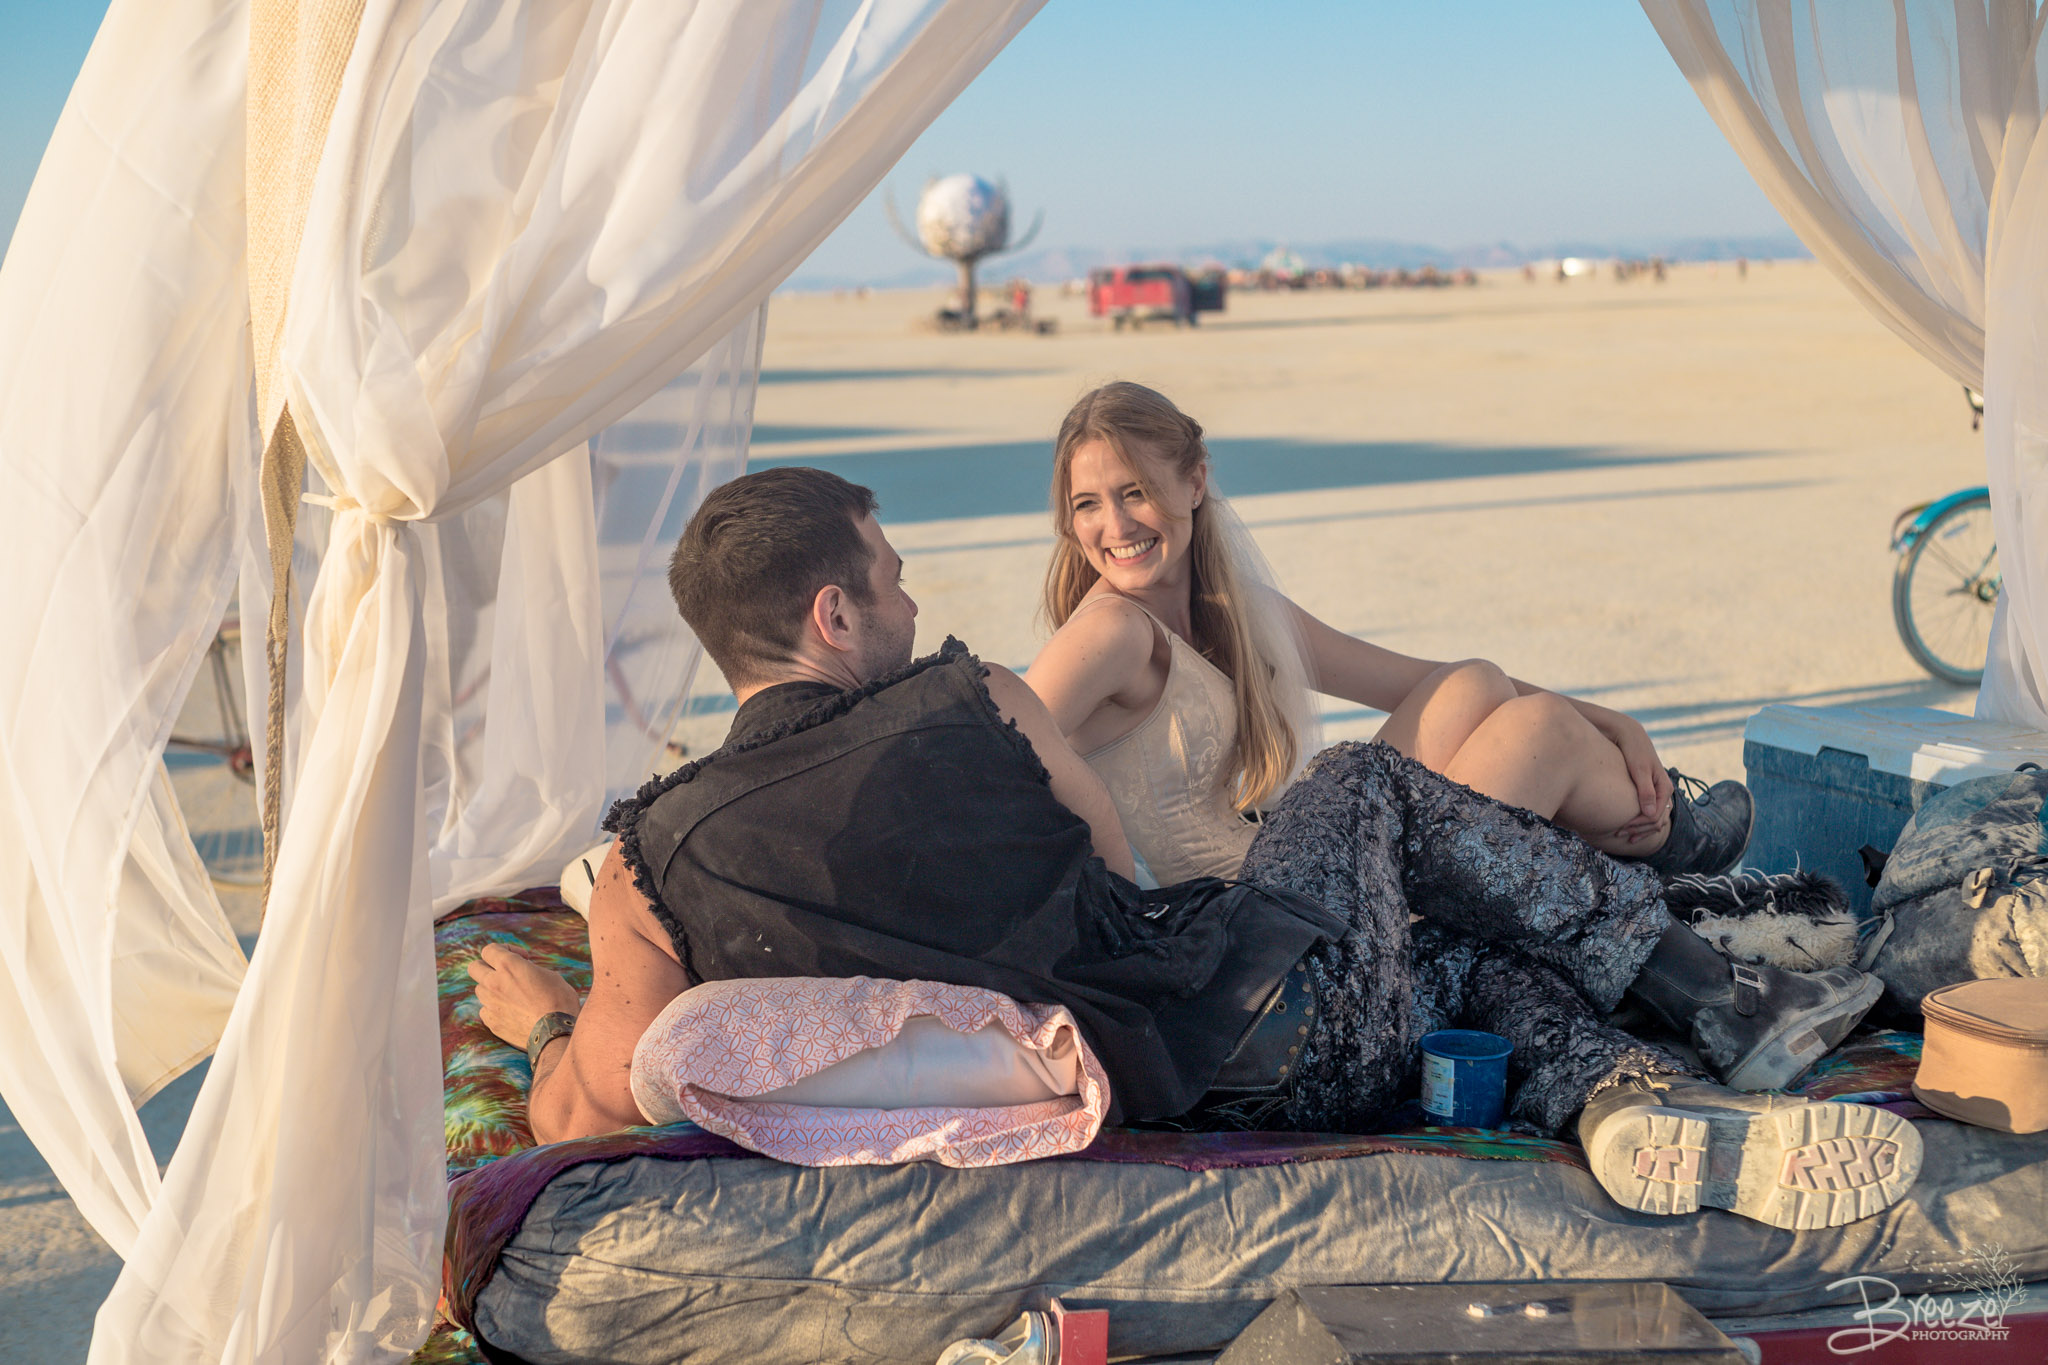 Brie'Ana Breeze Photography & Media - Burning Man 2018-3497.jpg